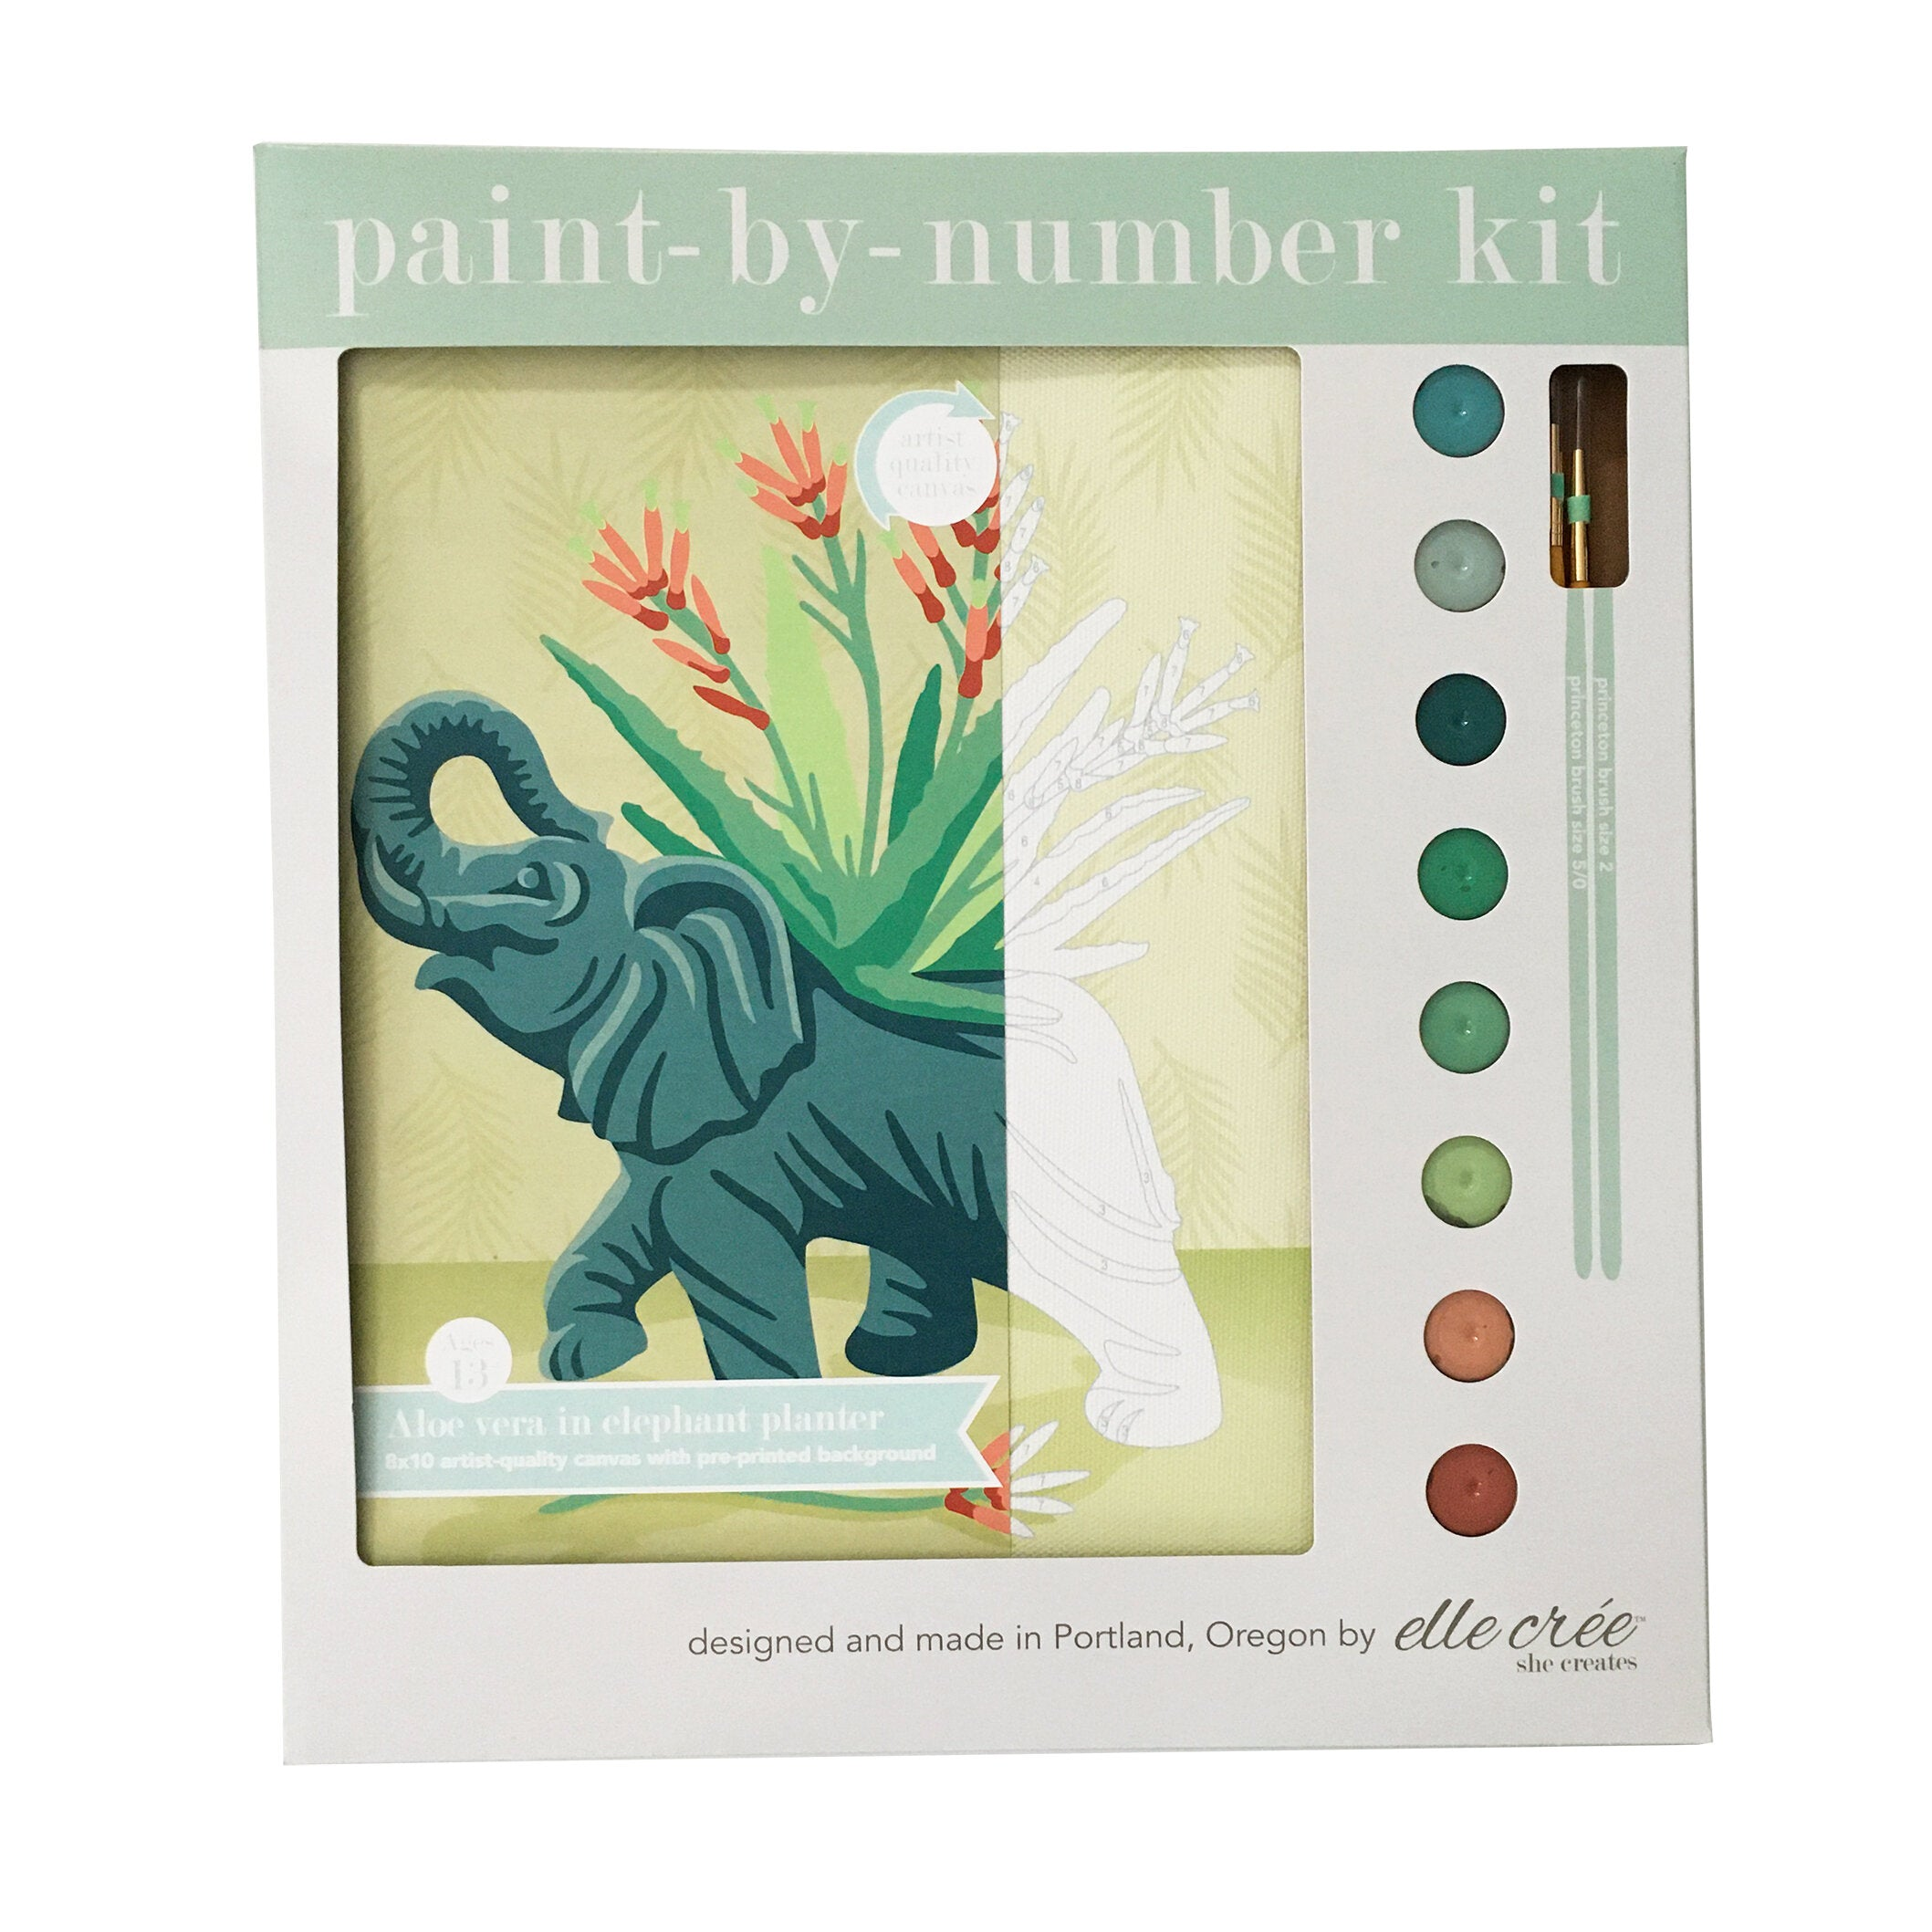 Aloe Vera in Elephant Planter Paint-By-Number Kit